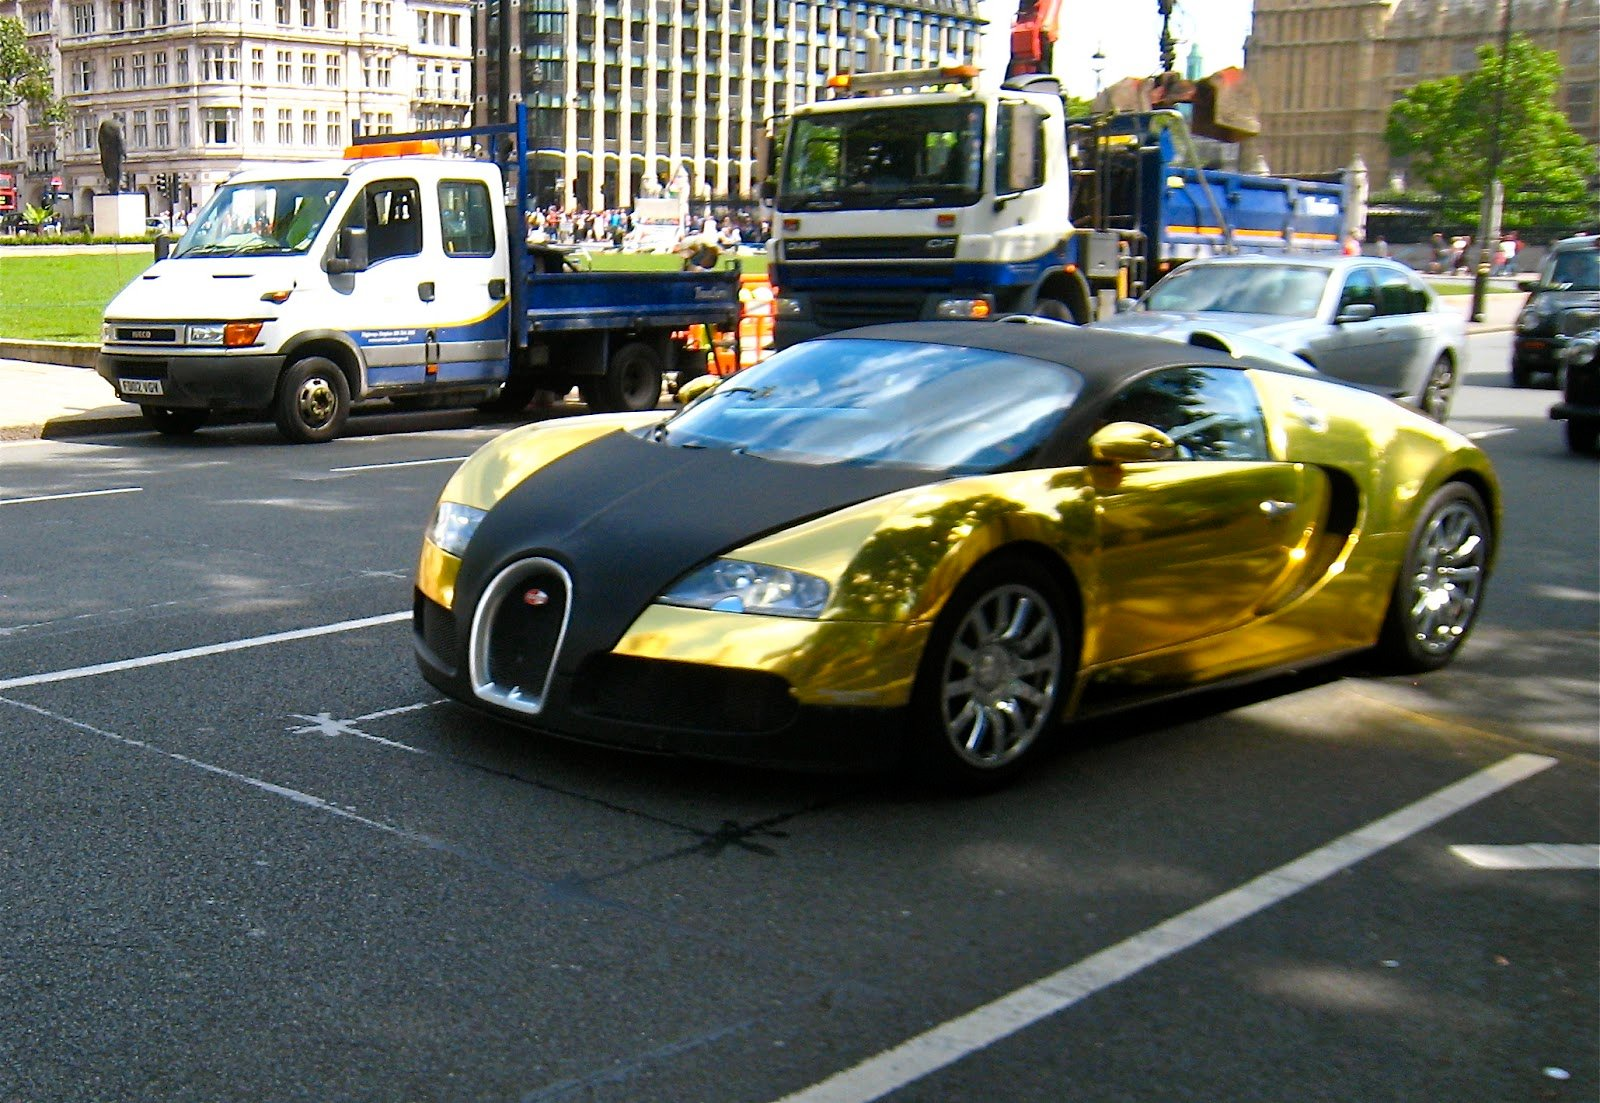 Gold Car Wallpapers: [46+] Cool Gold Cars Wallpapers On WallpaperSafari